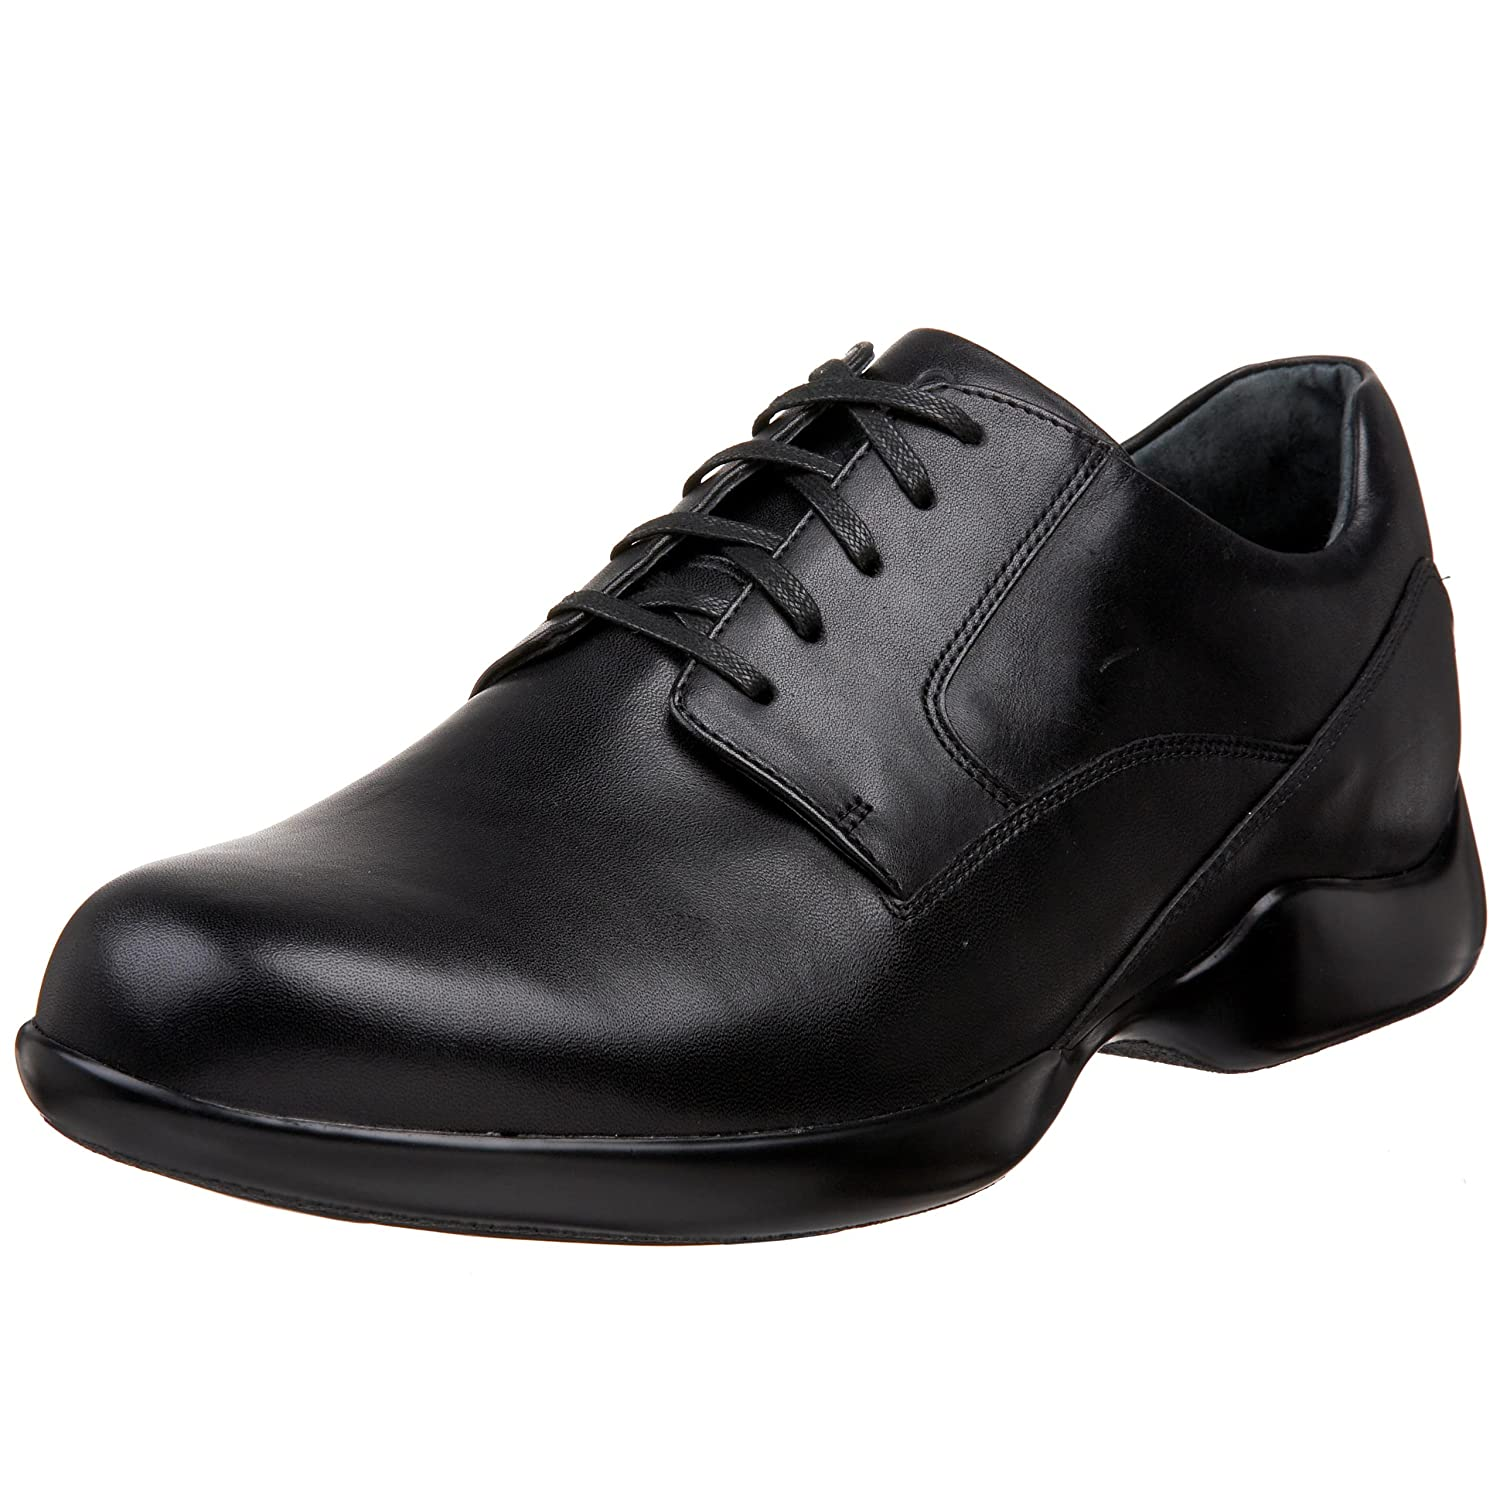 Aetrex Men's G501 Lace-Up Plain Toe